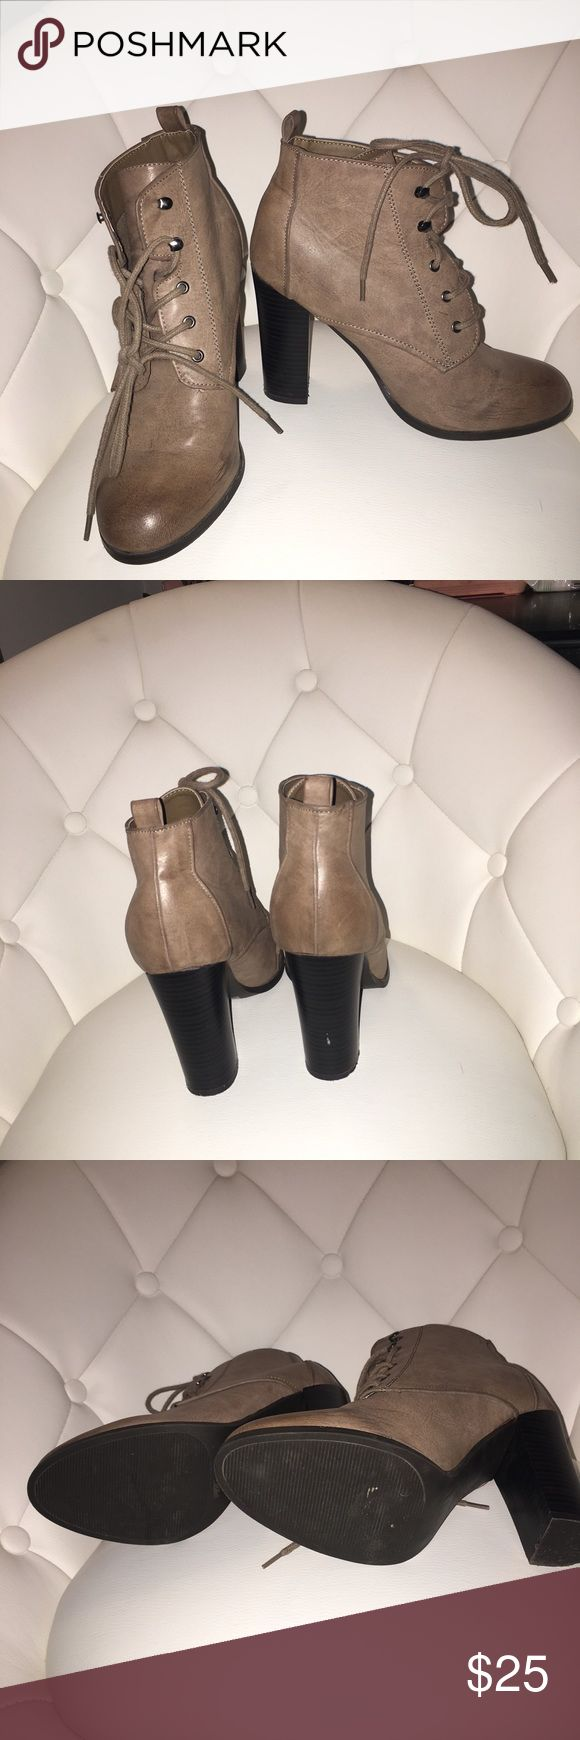 High heel booties Beautiful brown distressed leather high heeled booties from Charkotte Russe, worn once for an hour Charlotte Russe Shoes Heeled Boots